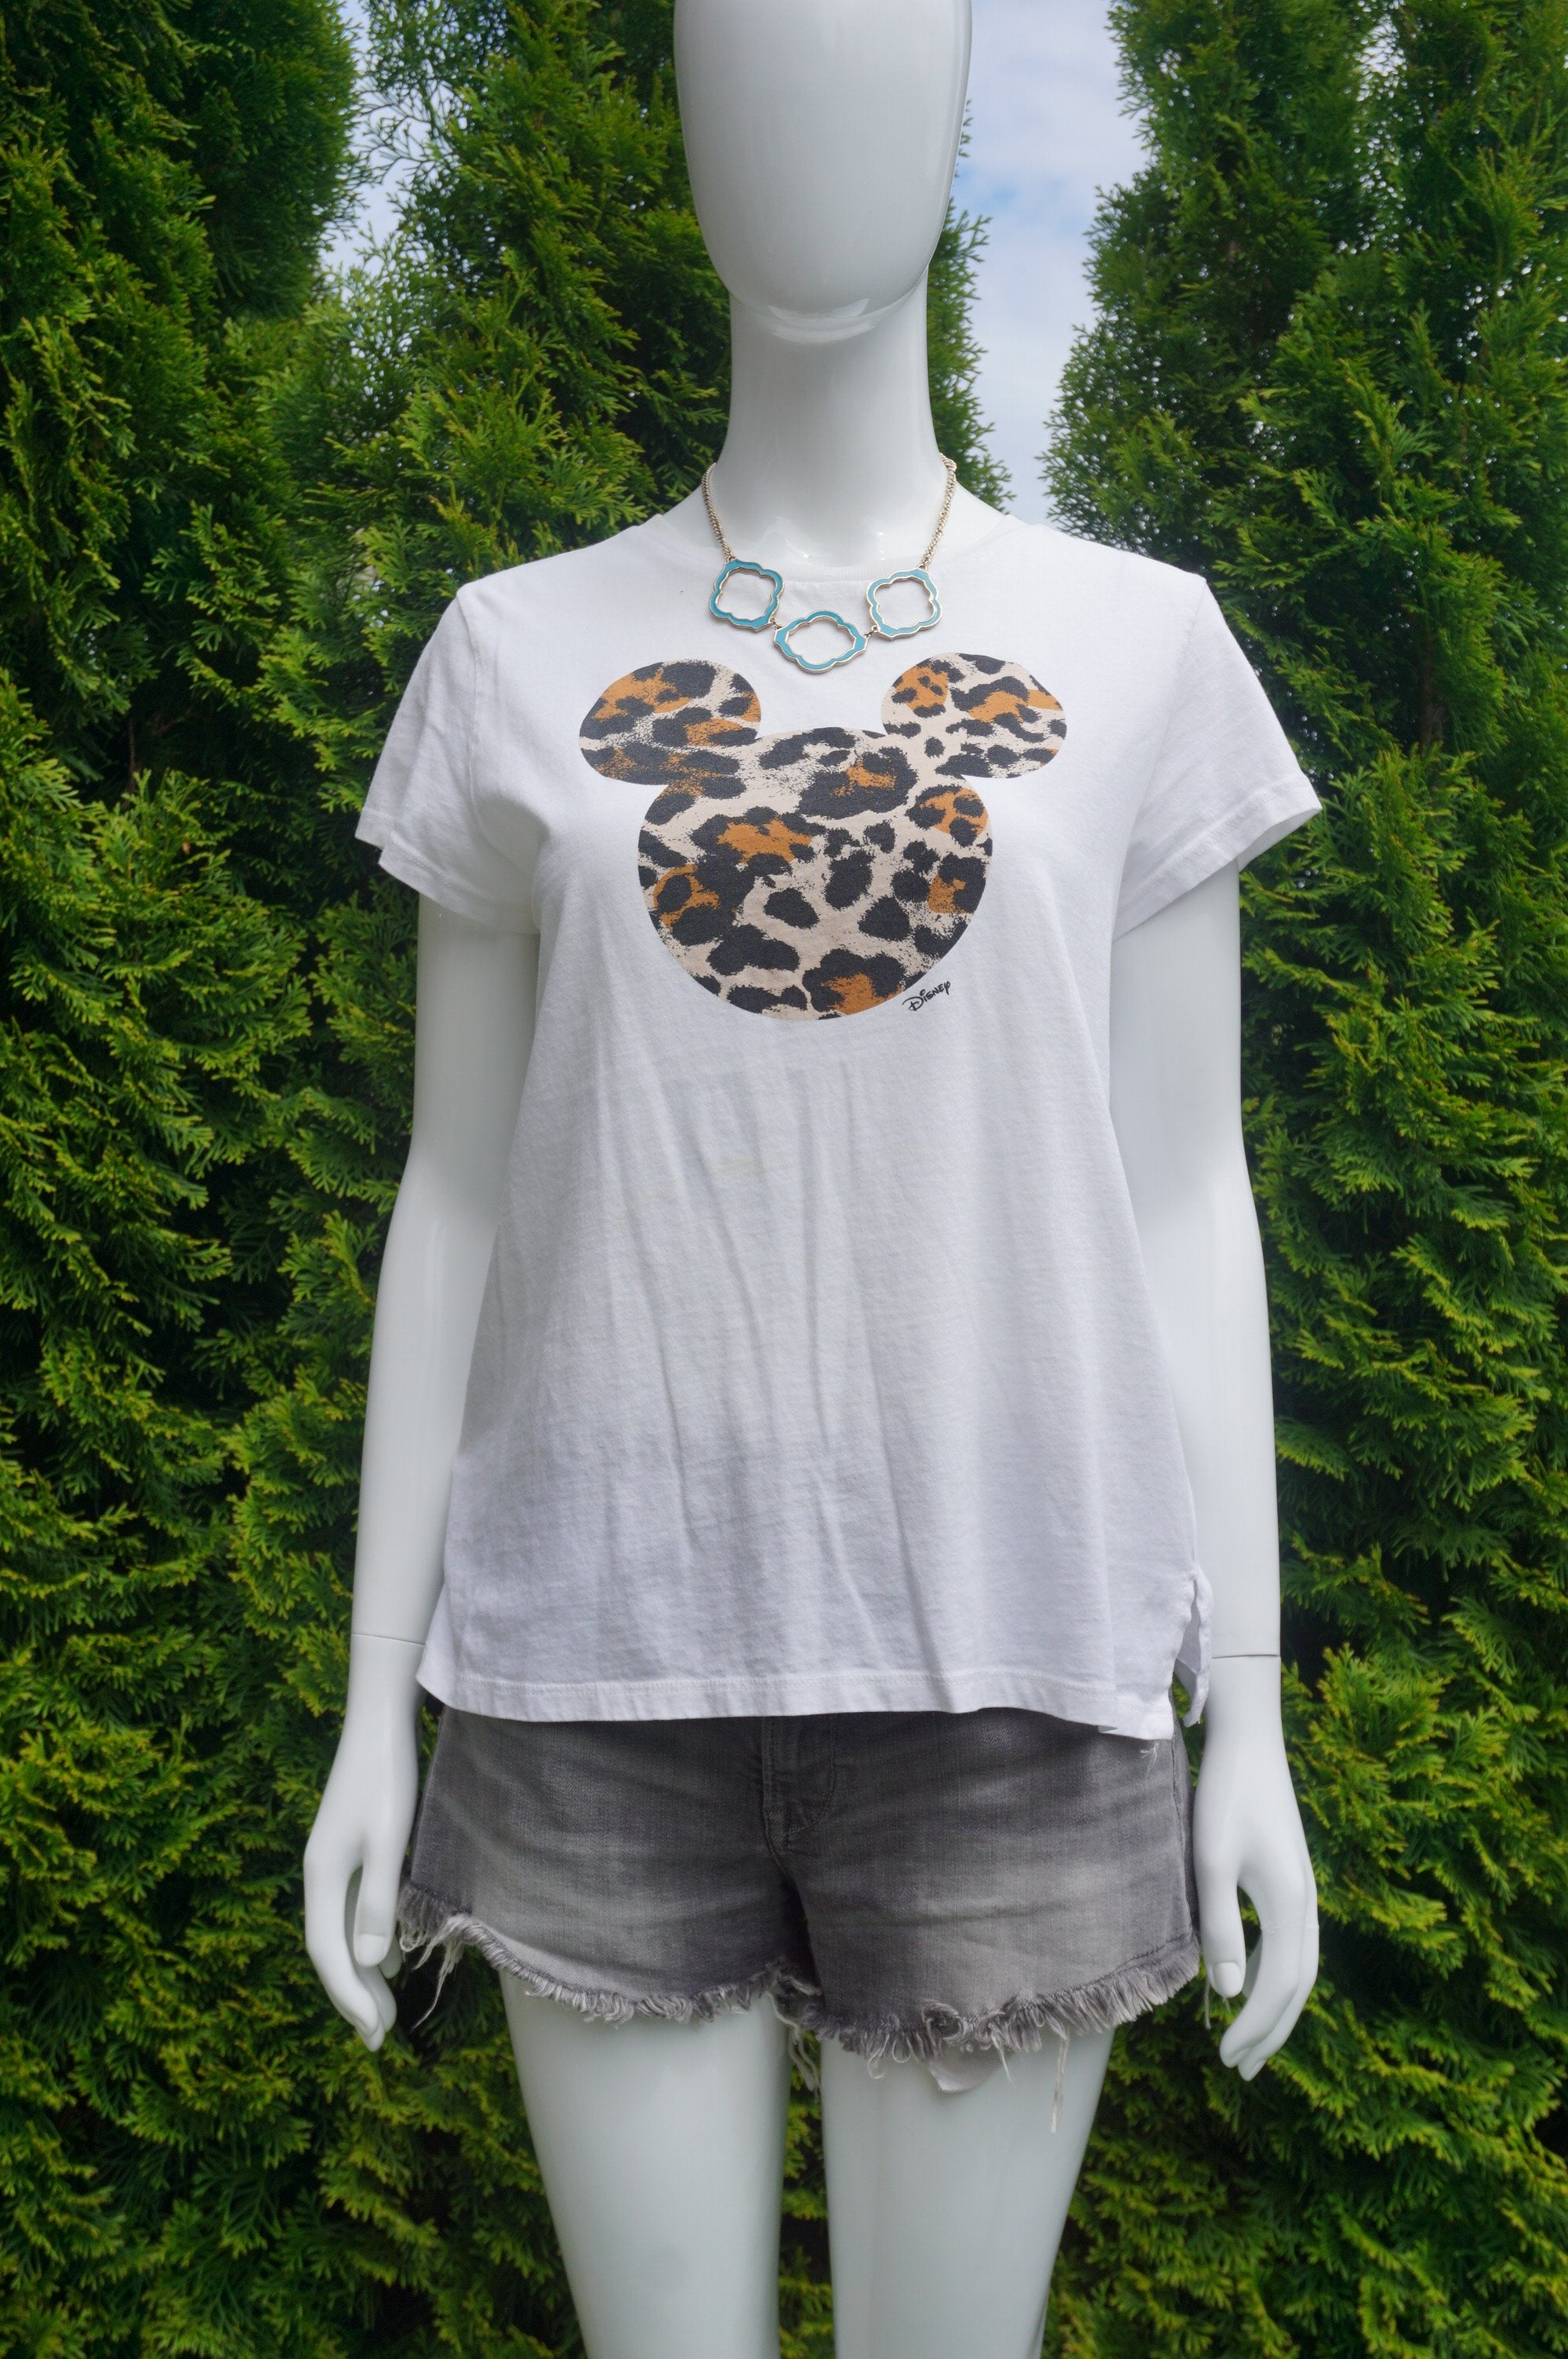 H&M Leopard Print Mickey Mouse T-shirt, Cute t-shirt with unique leopard print Mickey Mouse. Try wearing it tucked in with a pair of casual jeans., White, 100% Cotton, women's Tops, women's White Tops, H&M women's Tops, mickey mouse t-shirt, leopard print Disney mickey mouse t-shirt. Leopard mickey mouse, Disney t-shirt